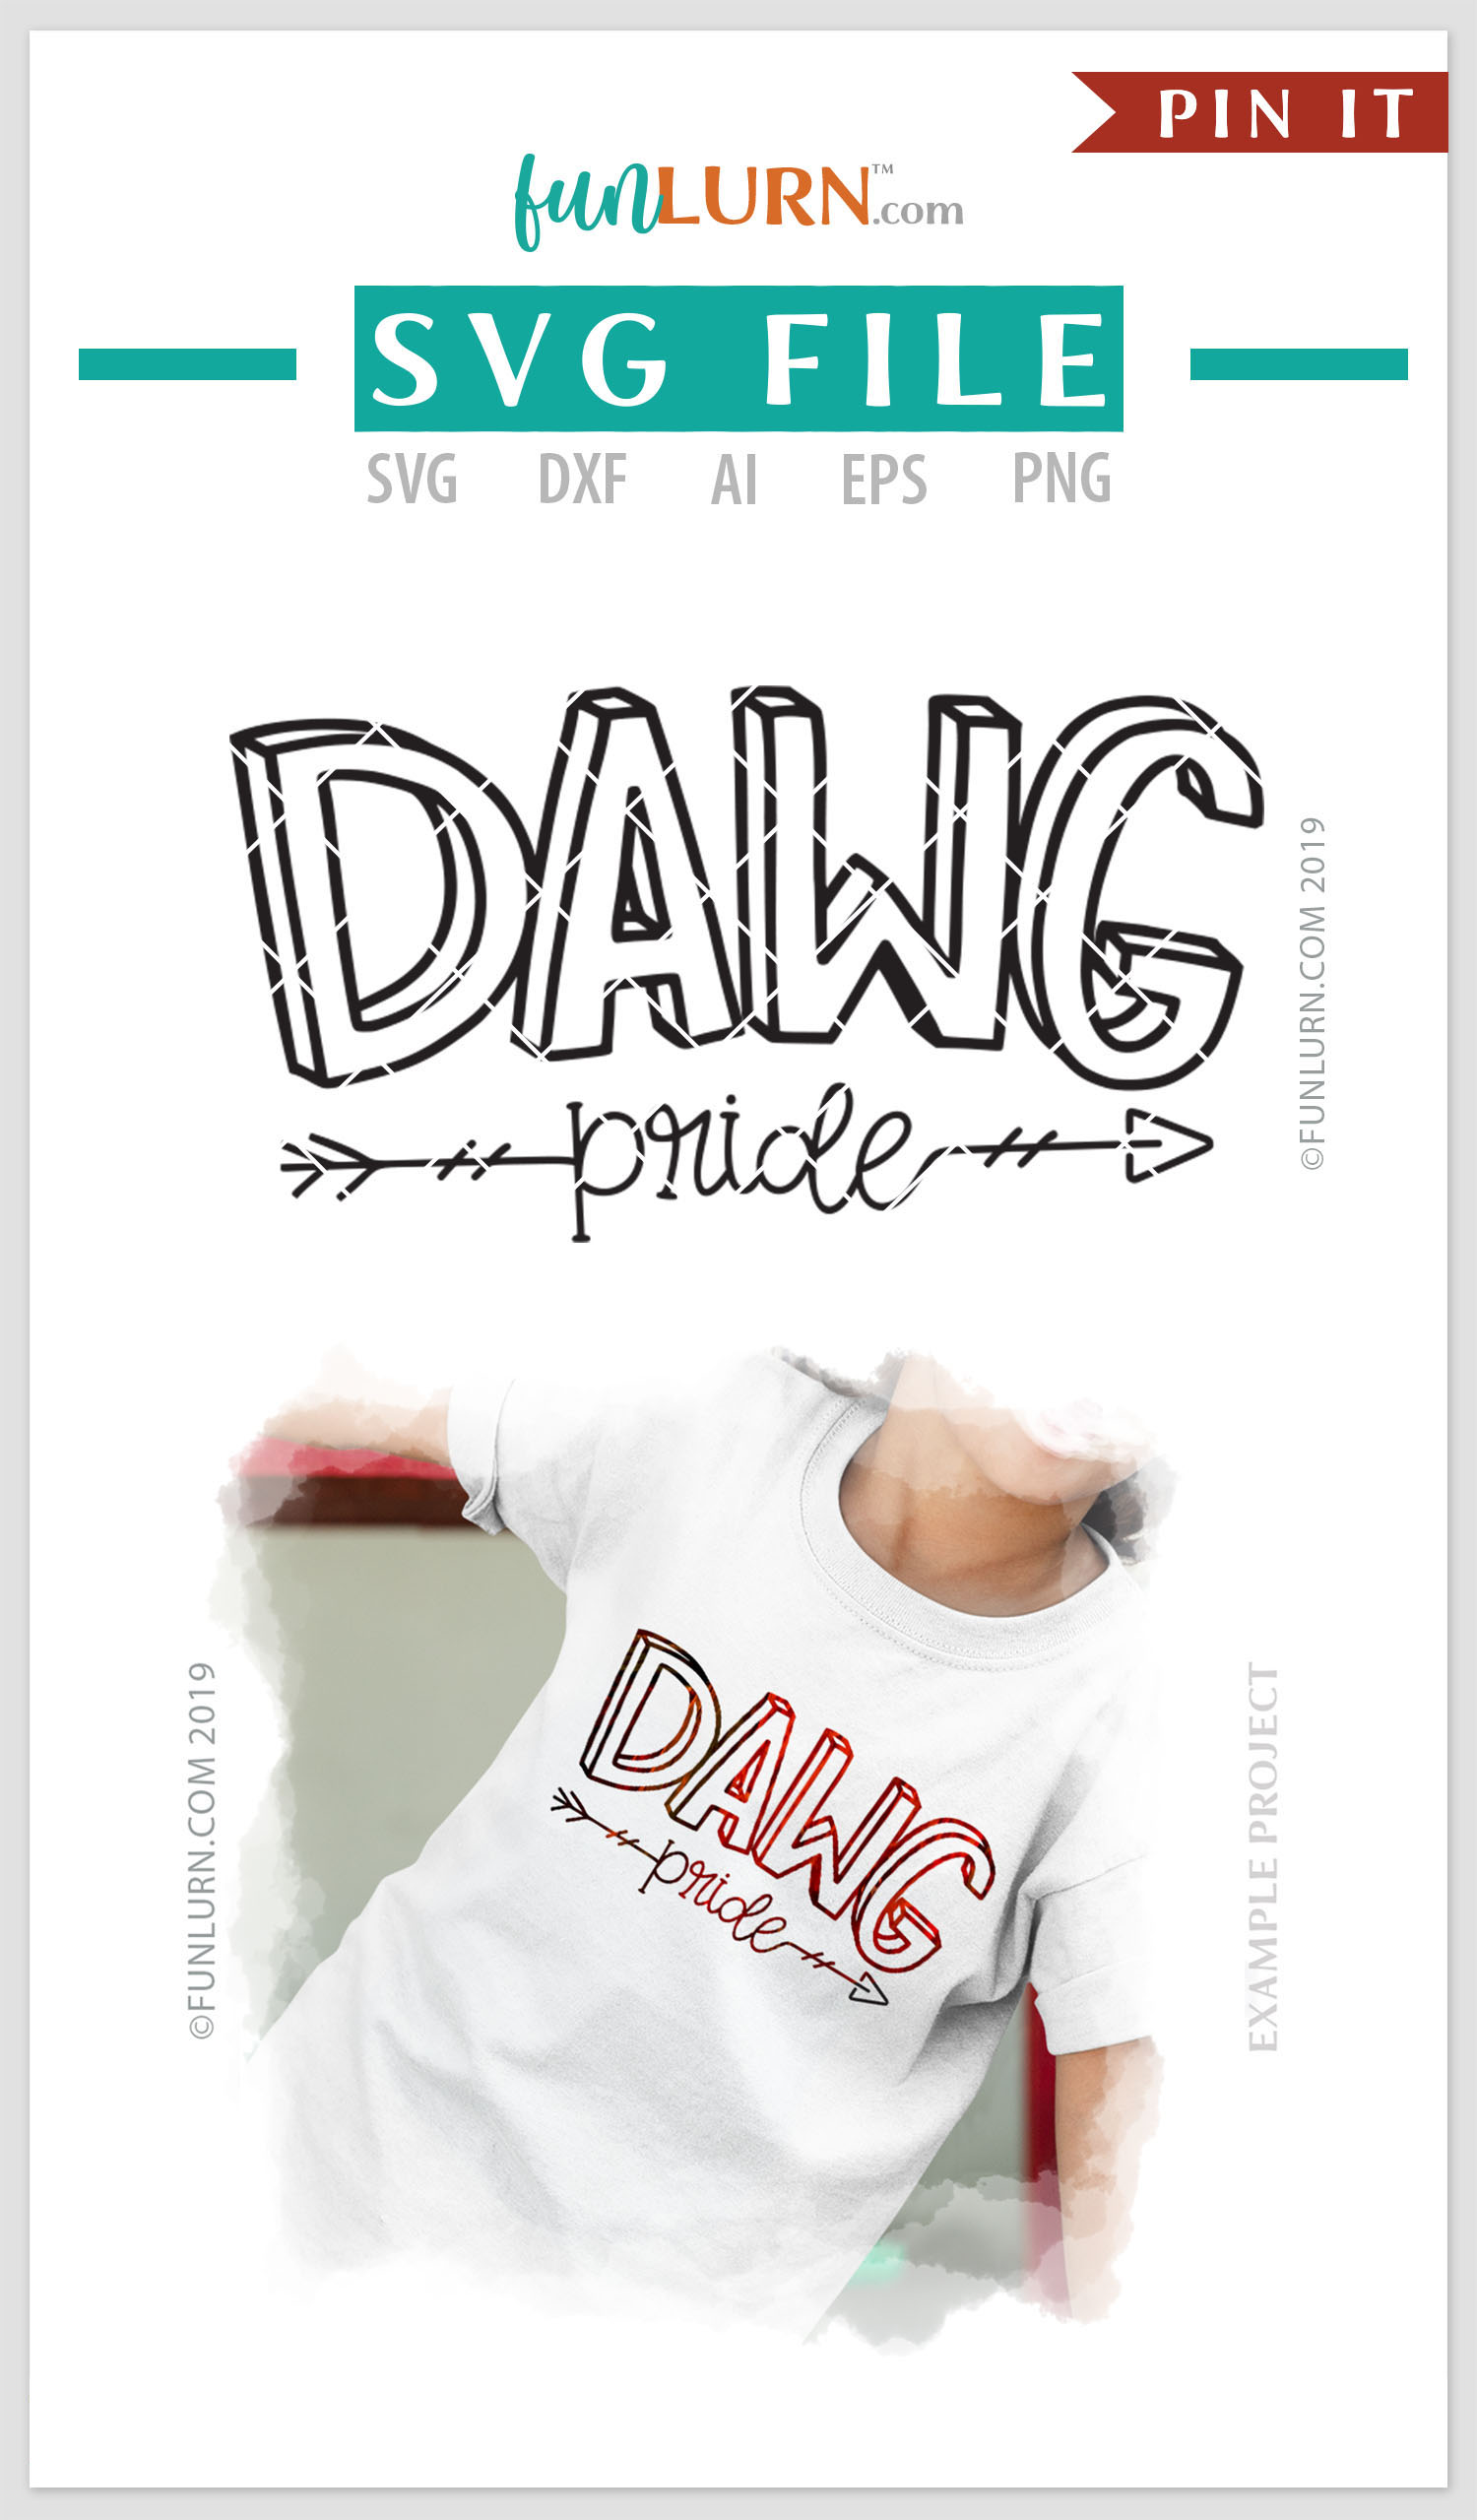 Dawg Pride Team SVG Cut File example image 4